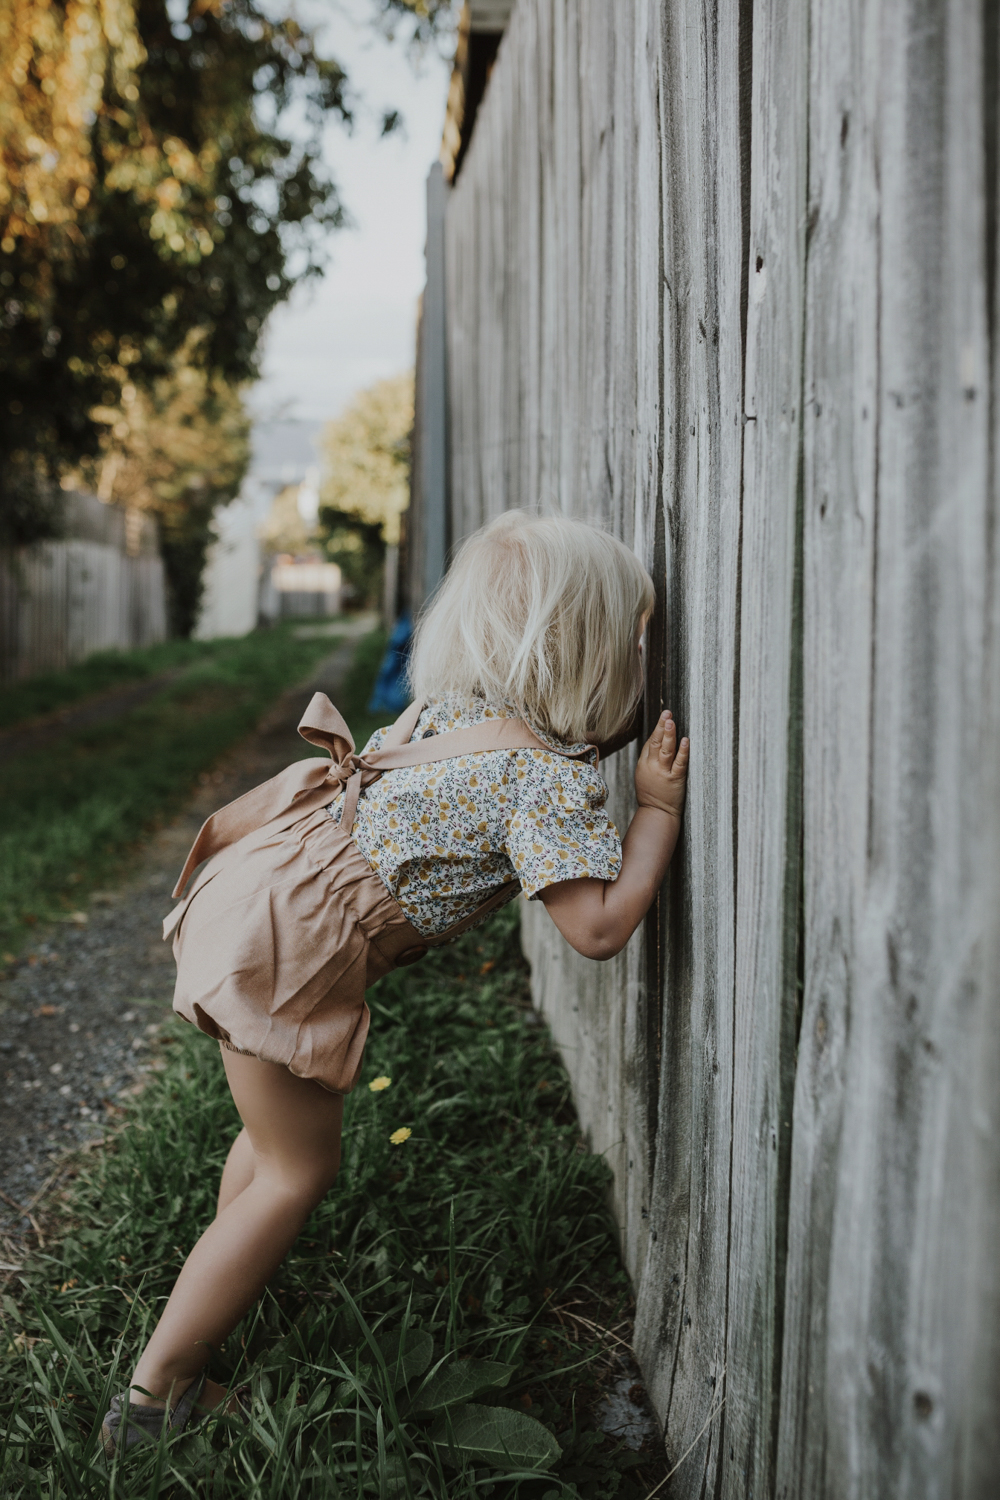 Young girl looks through fence wearing overalls and blouse from